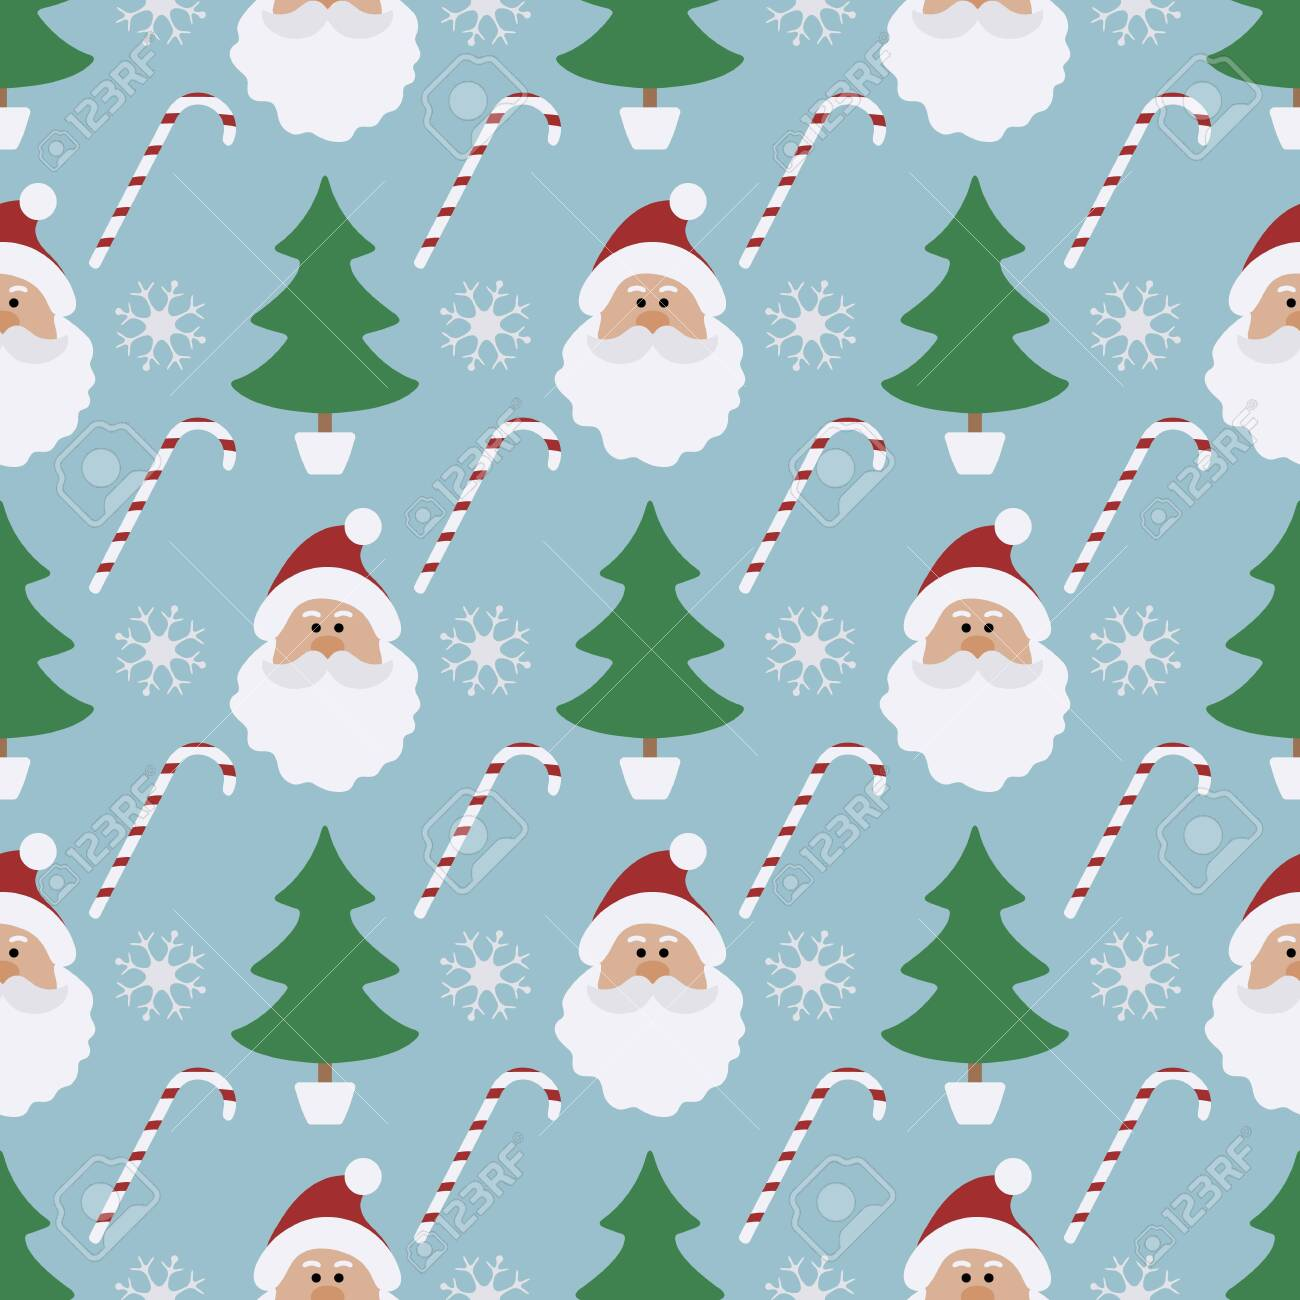 2020 Christmas Pattern With Santa Claus Happy New Year 2020, Merry Christmas. Vector Seamless Pattern